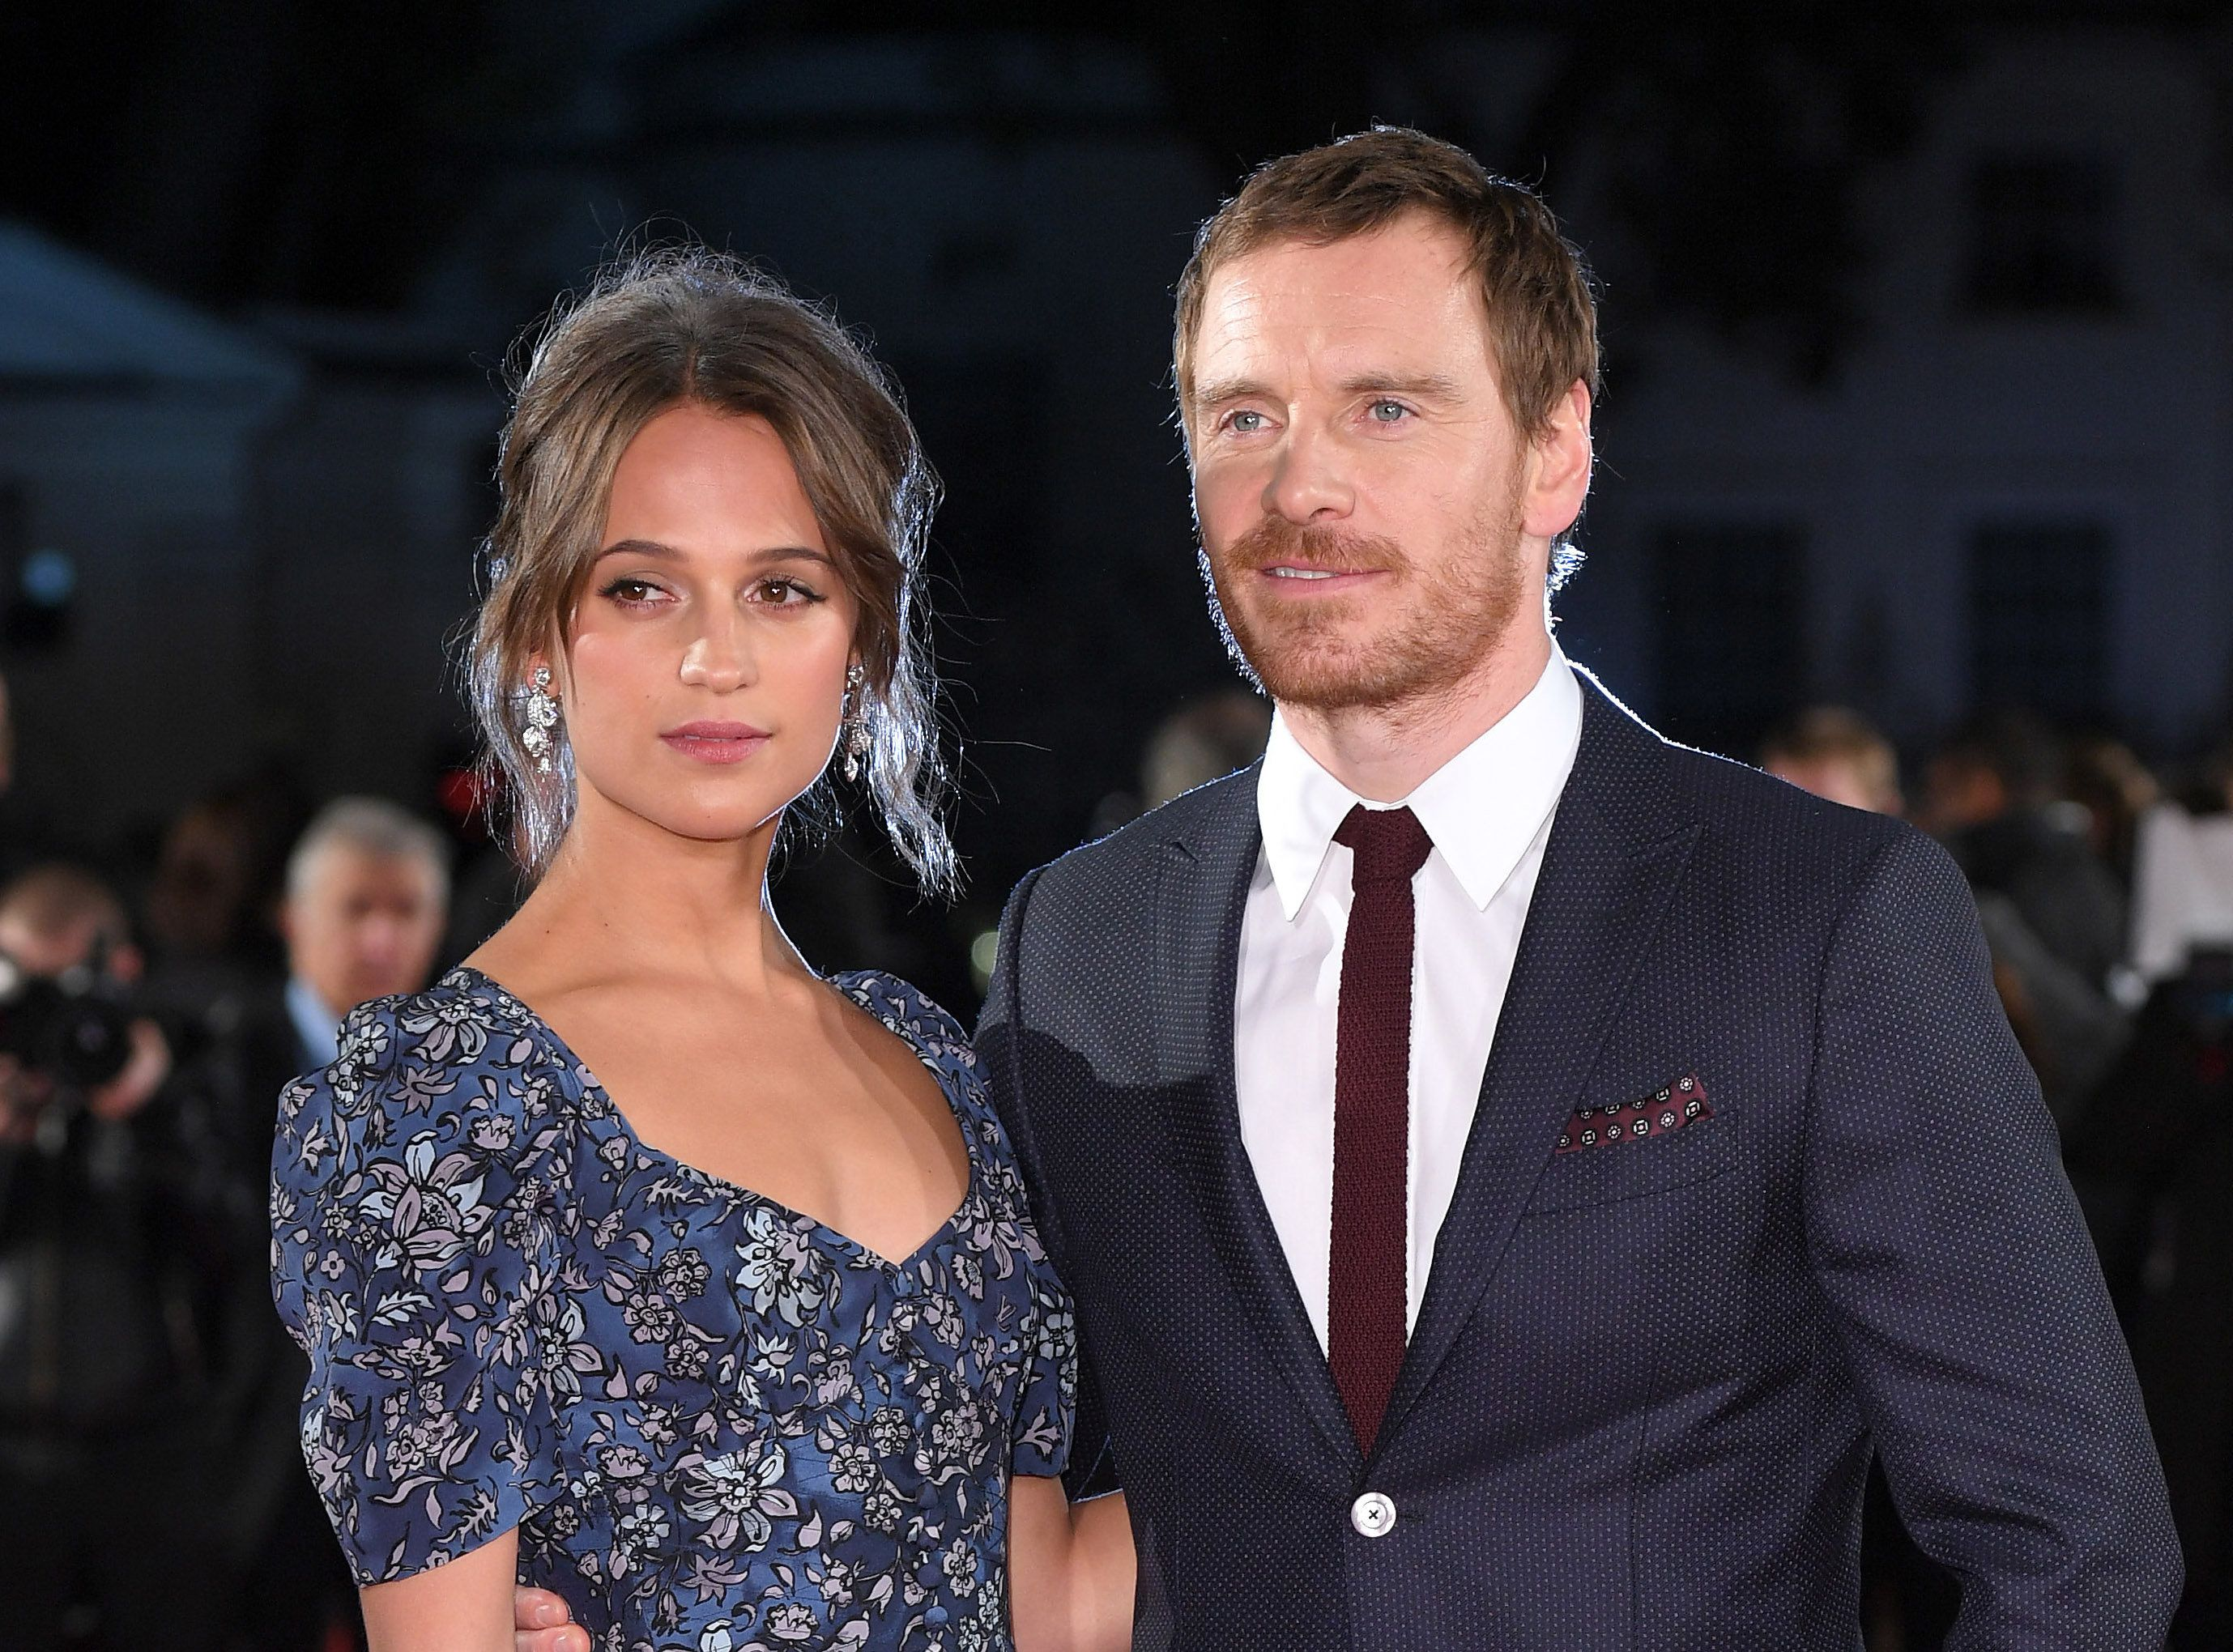 LONDON, ENGLAND - OCTOBER 19:  Alicia Vikander and Michael Fassbender arrive for the UK premiere of 'The Light Between Oceans' at The Curzon Mayfair on October 19, 2016 in London, England.  (Photo by Karwai Tang/WireImage)